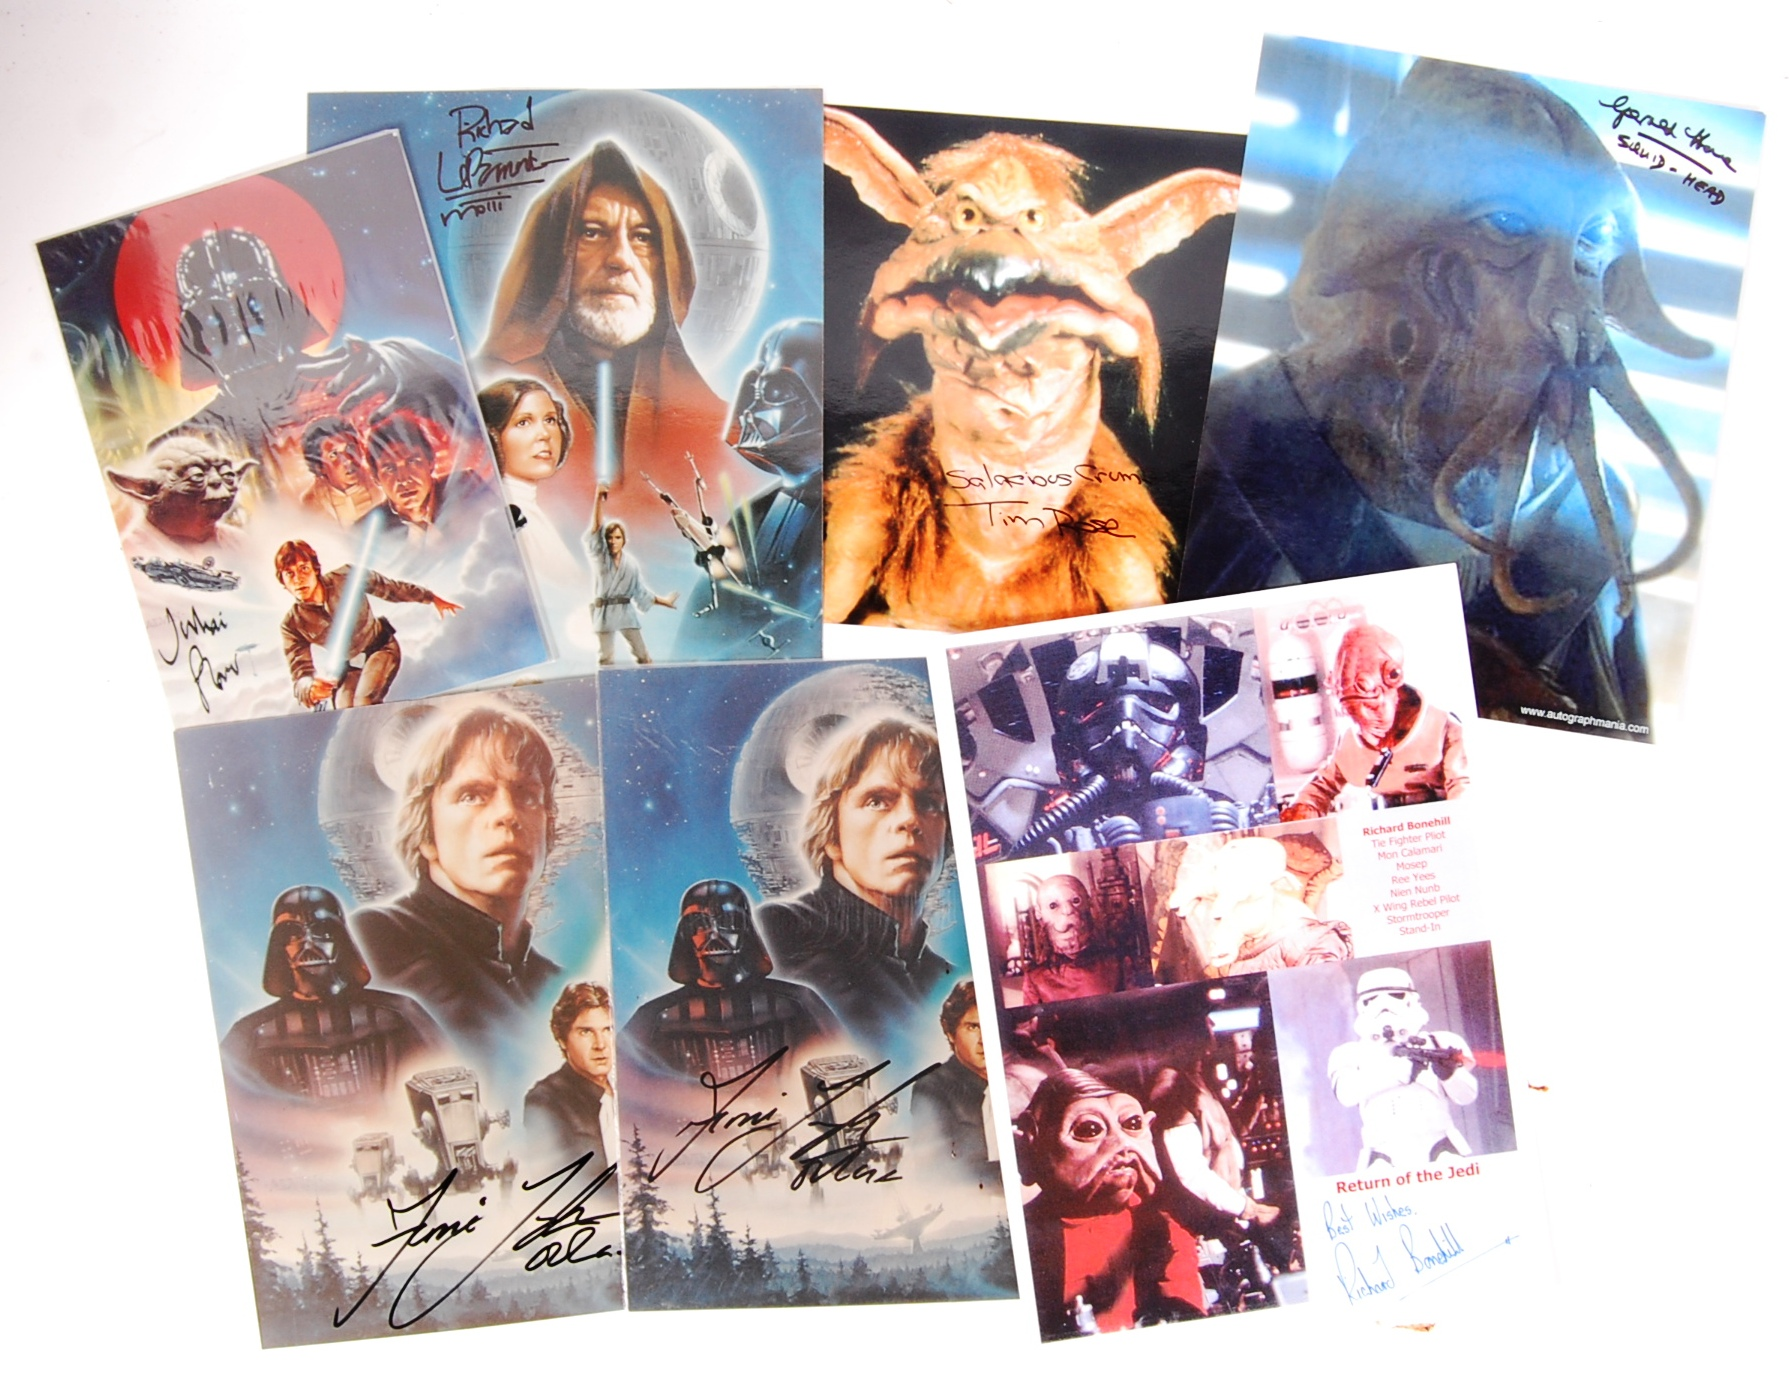 STAR WARS - SELECTION OF AUTOGRAPHED PHOTOGRAPHS